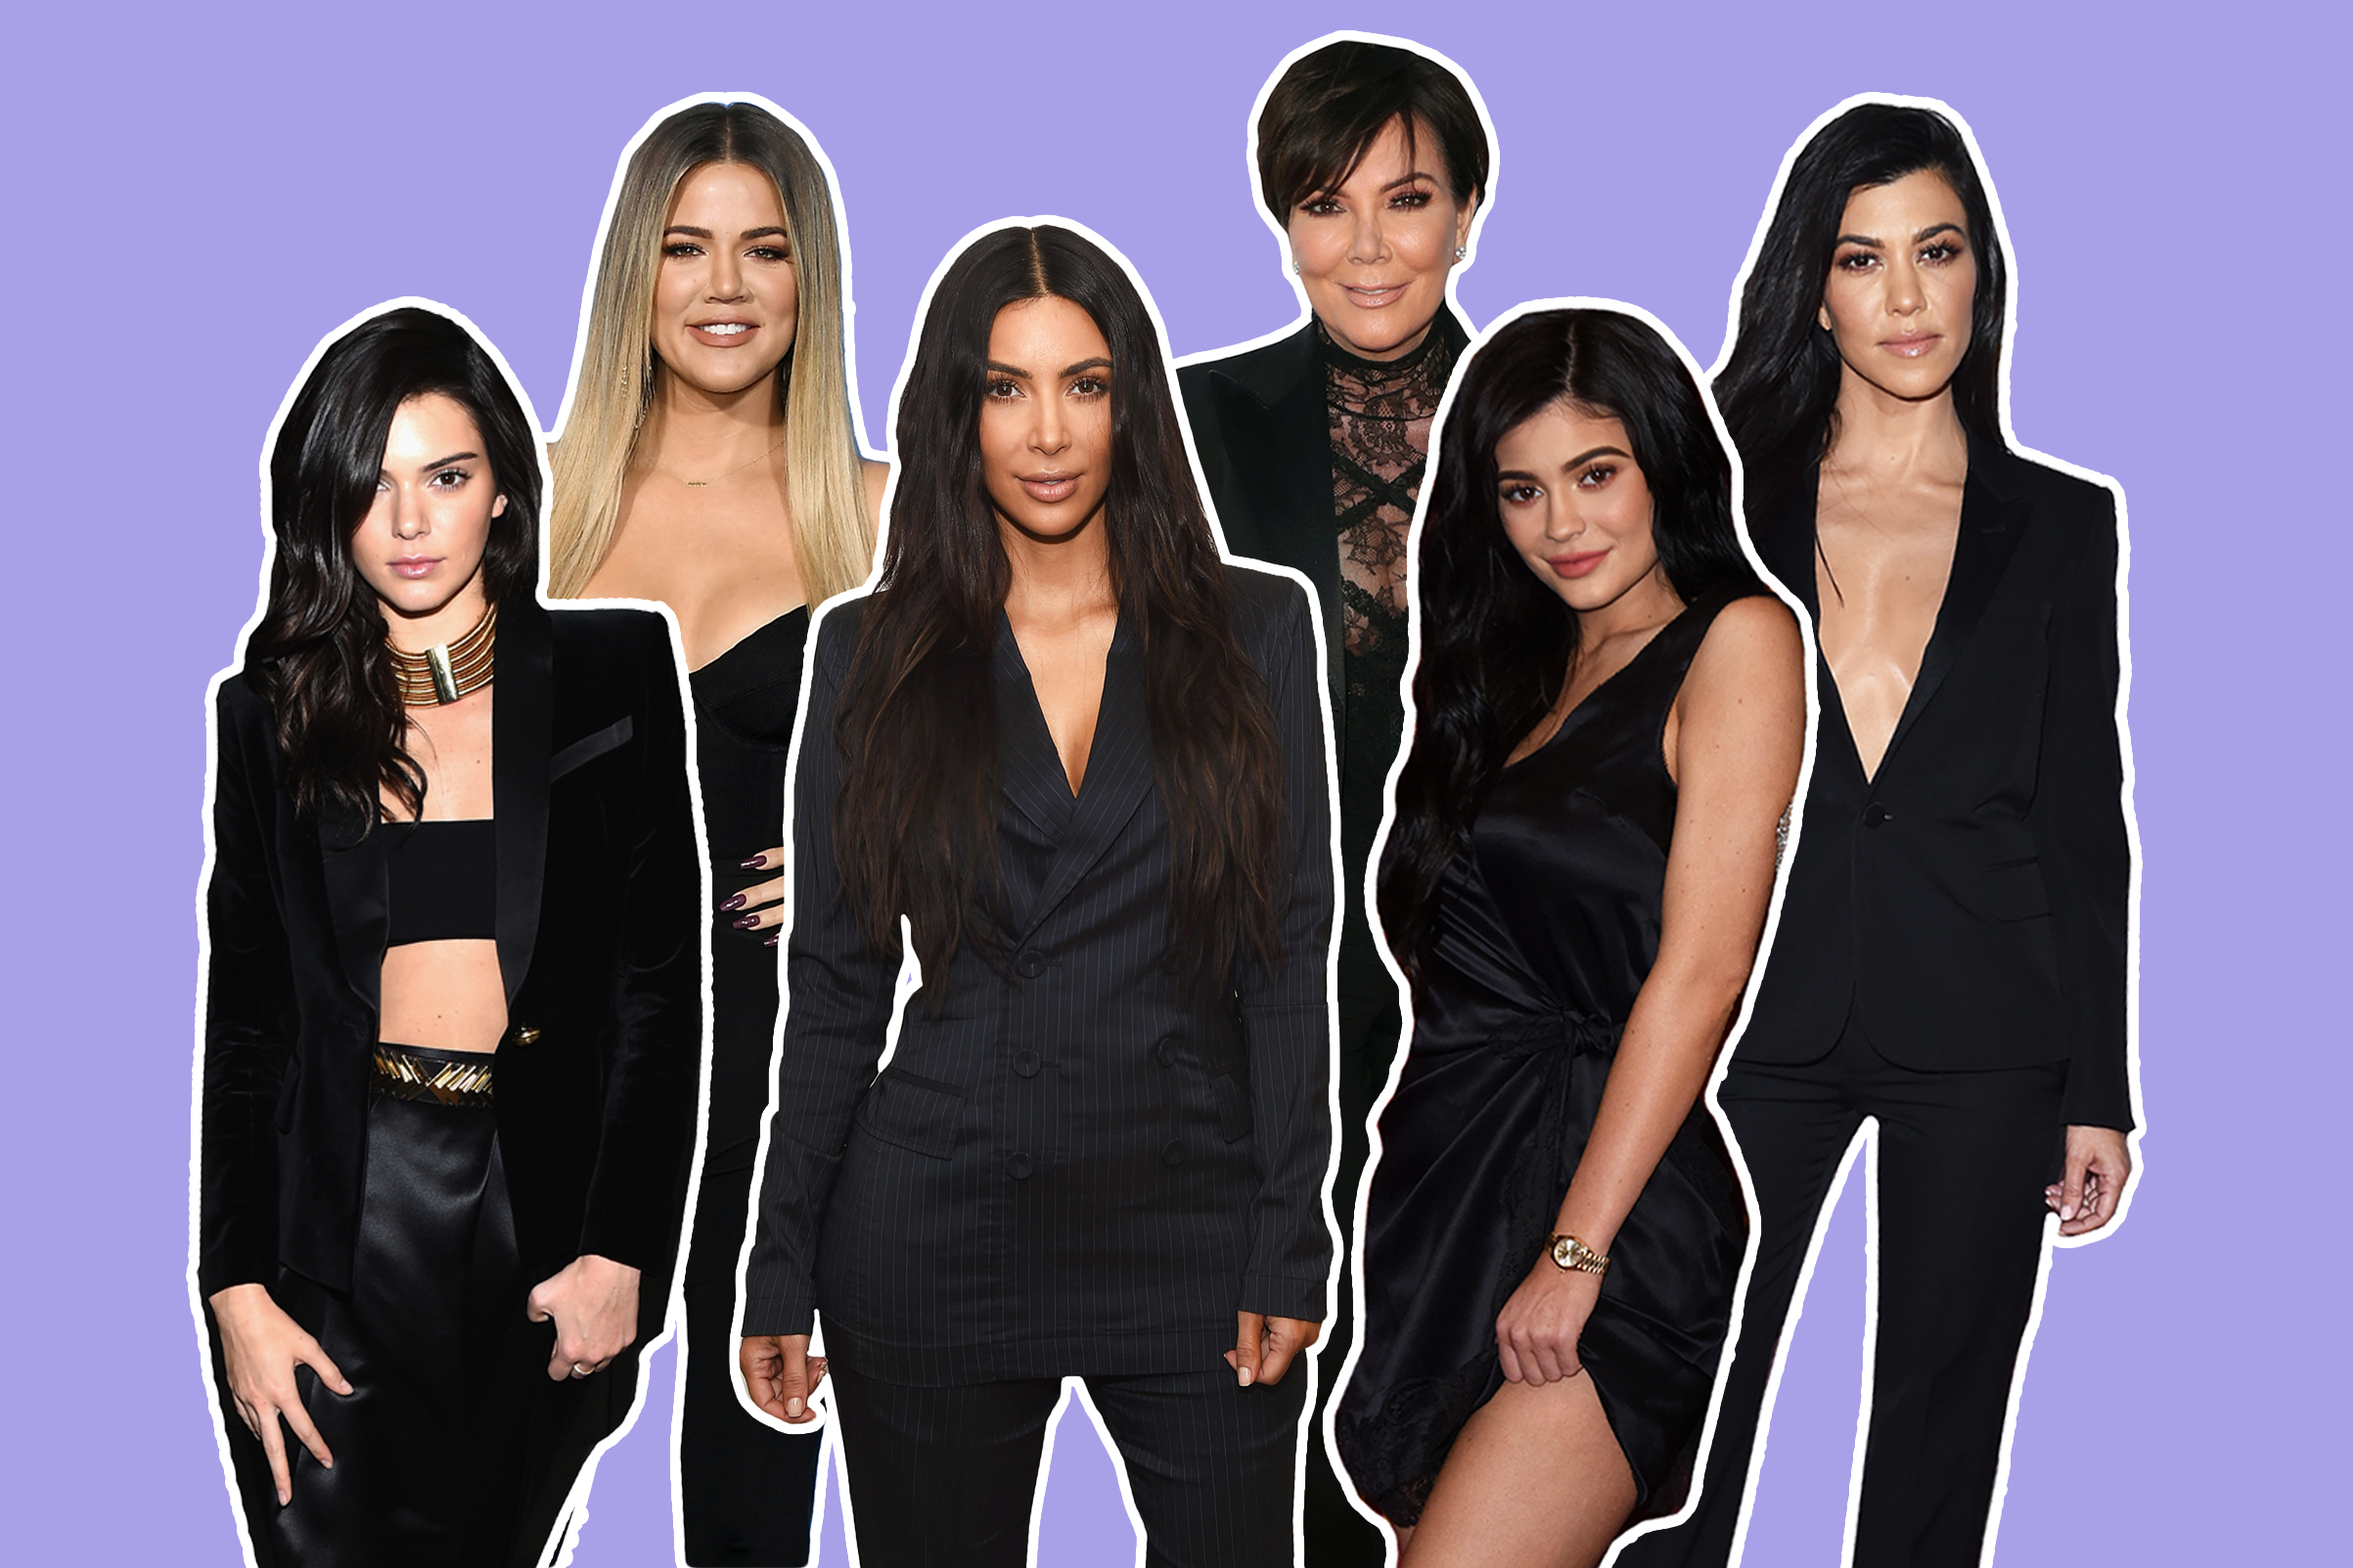 How I Became a Fan of the Kardashian/Jenner Family in 11 Minutes